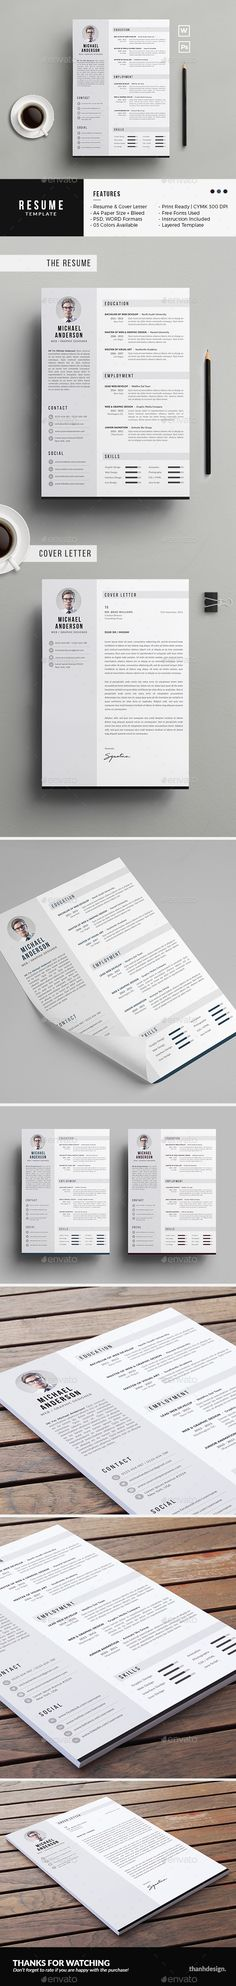 Slick + Simple Resume with Cover Letter Simple resume - read write think resume